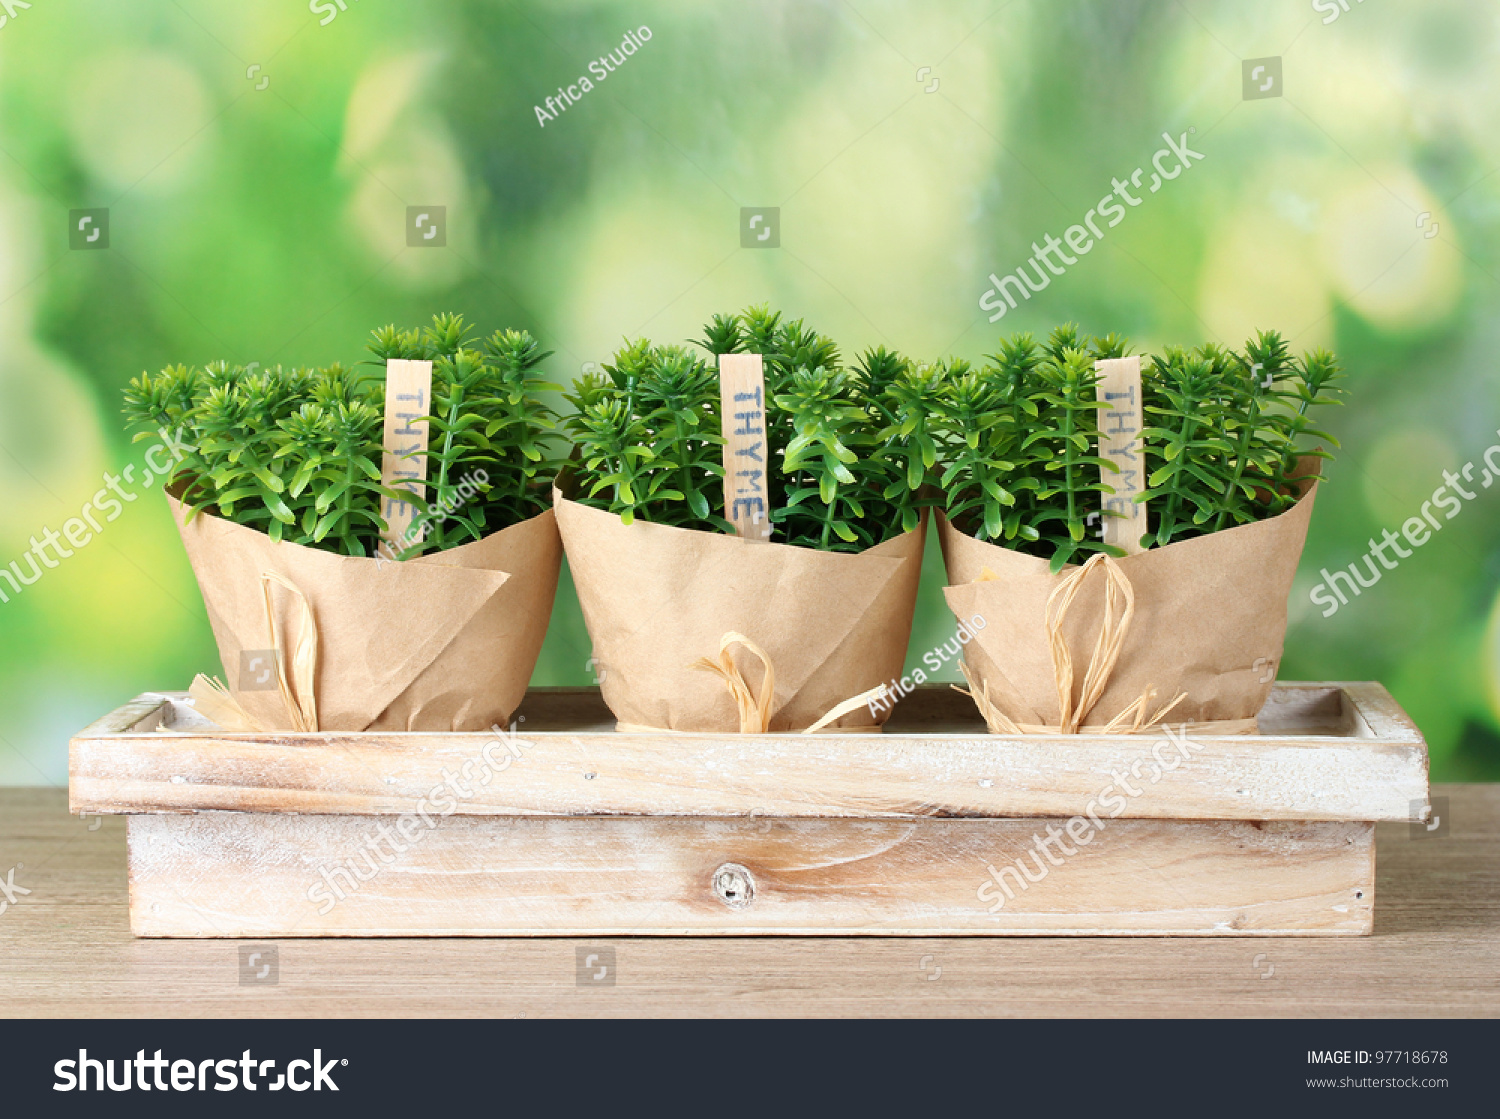 thesis on thyme Doctoral thesis factors can influence the accumulation of antioxidant compounds in self-heal (prunella vulgaris l) and garden thyme (thymus vulgaris l.